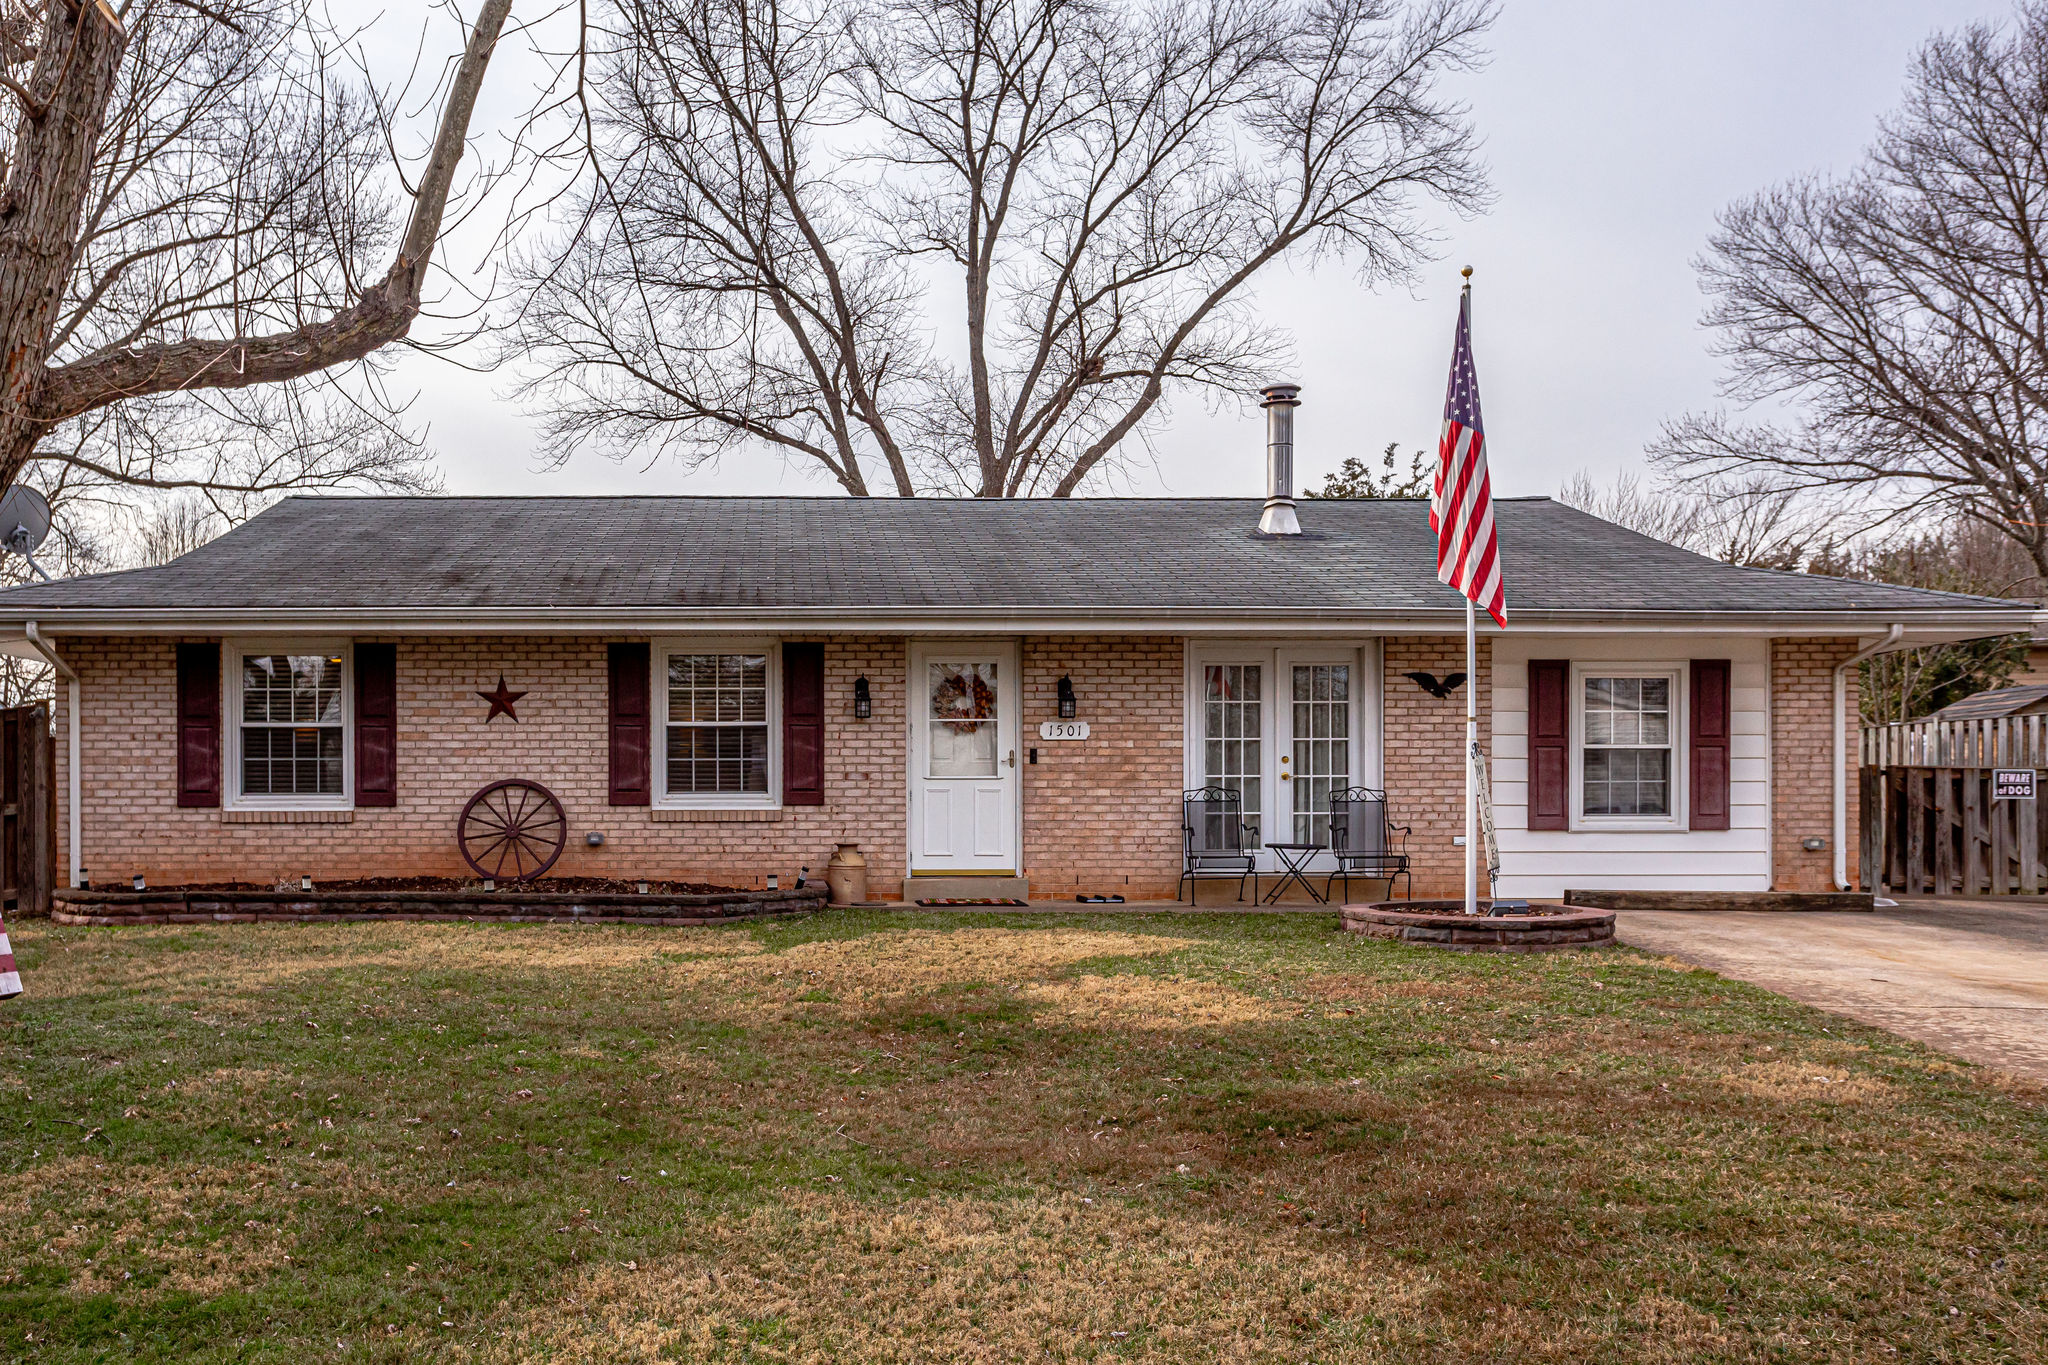 1501 Dinwiddie St, Sterling, VA - For Sale!